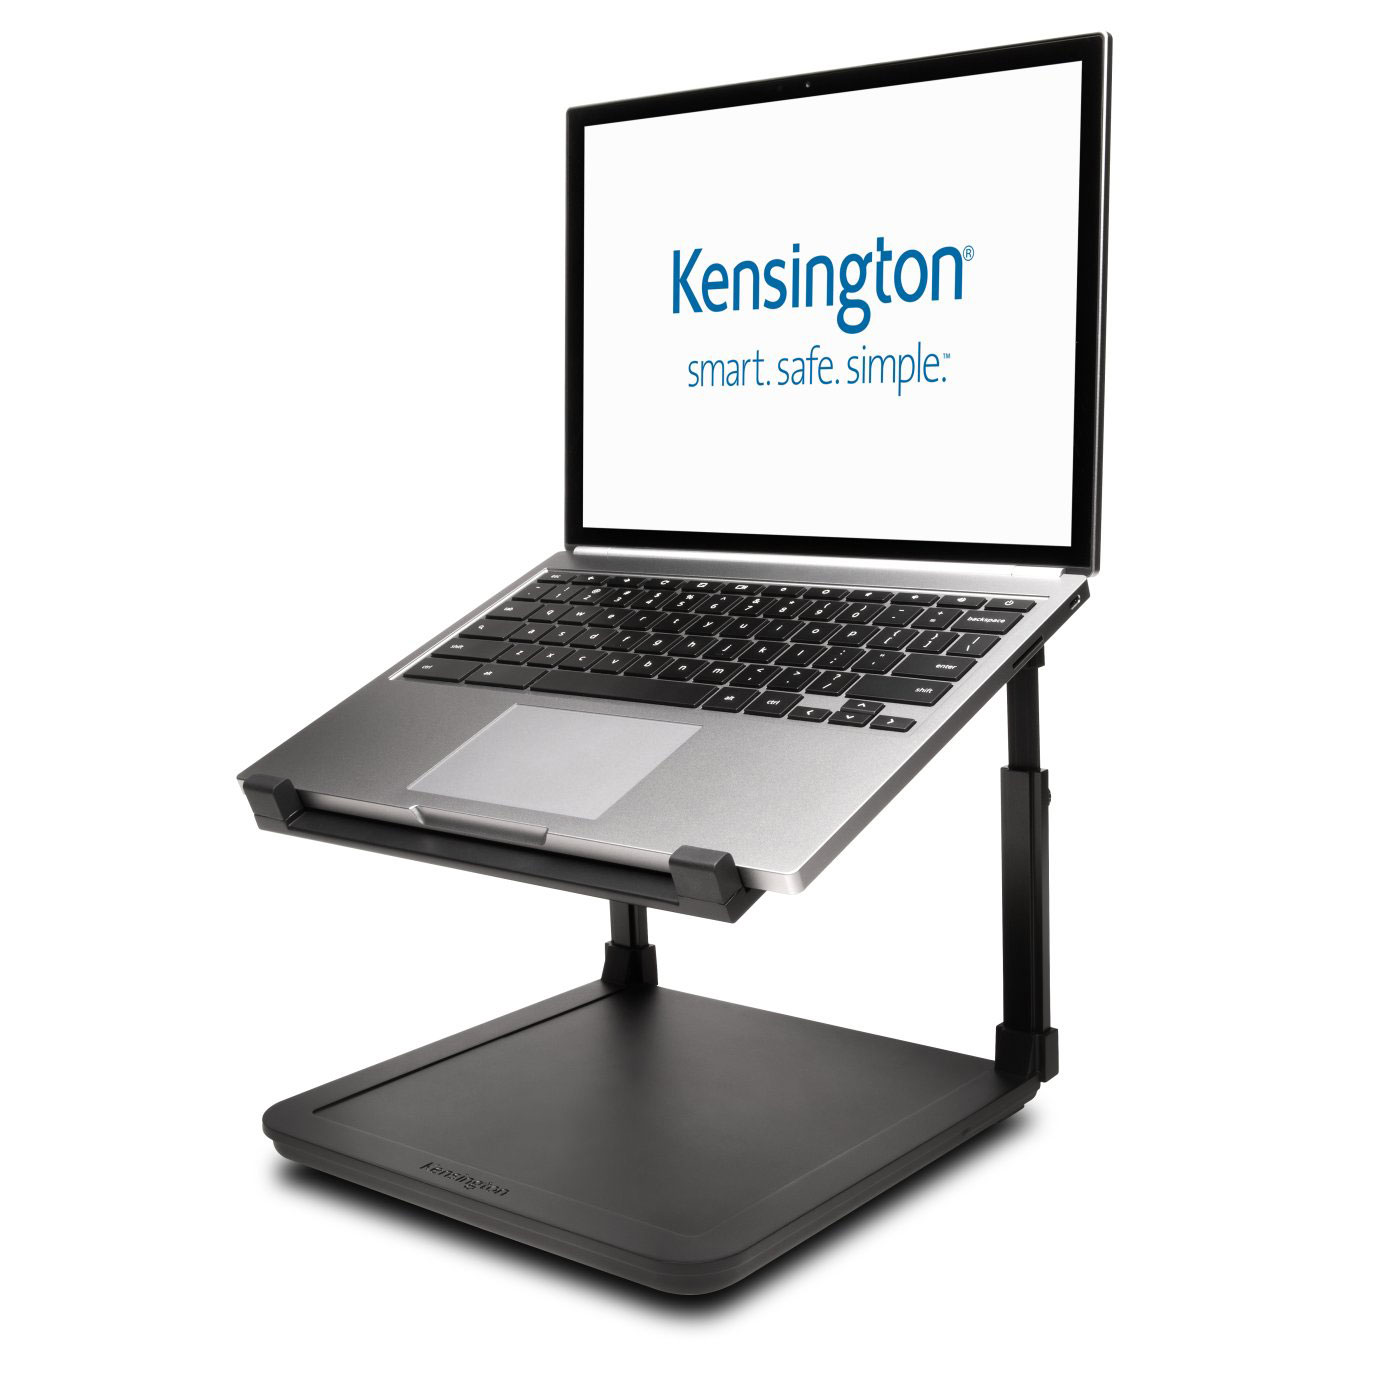 kensington smartfit laptop riser accessoires pc portable kensington sur. Black Bedroom Furniture Sets. Home Design Ideas